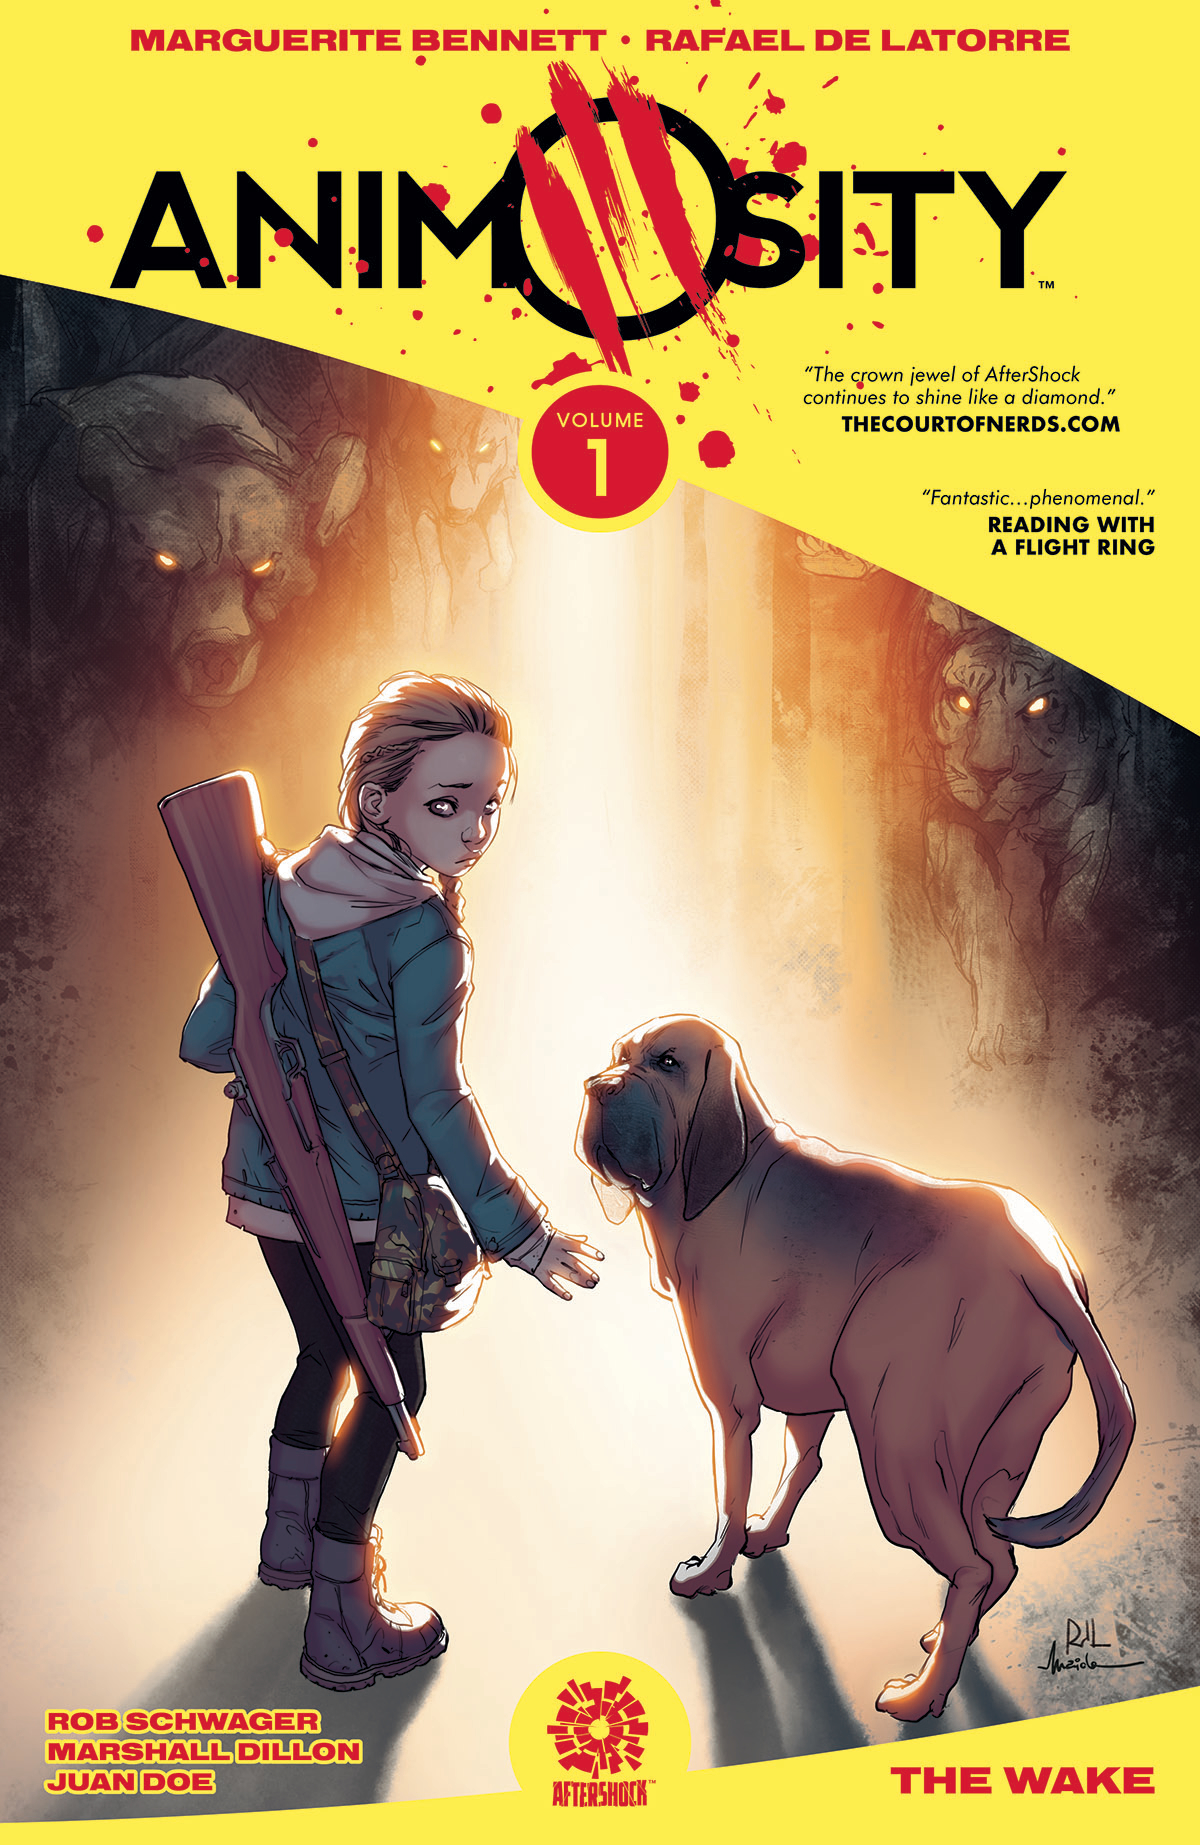 ANIMOSITY TP VOL 01 (JAN171219) (MR)